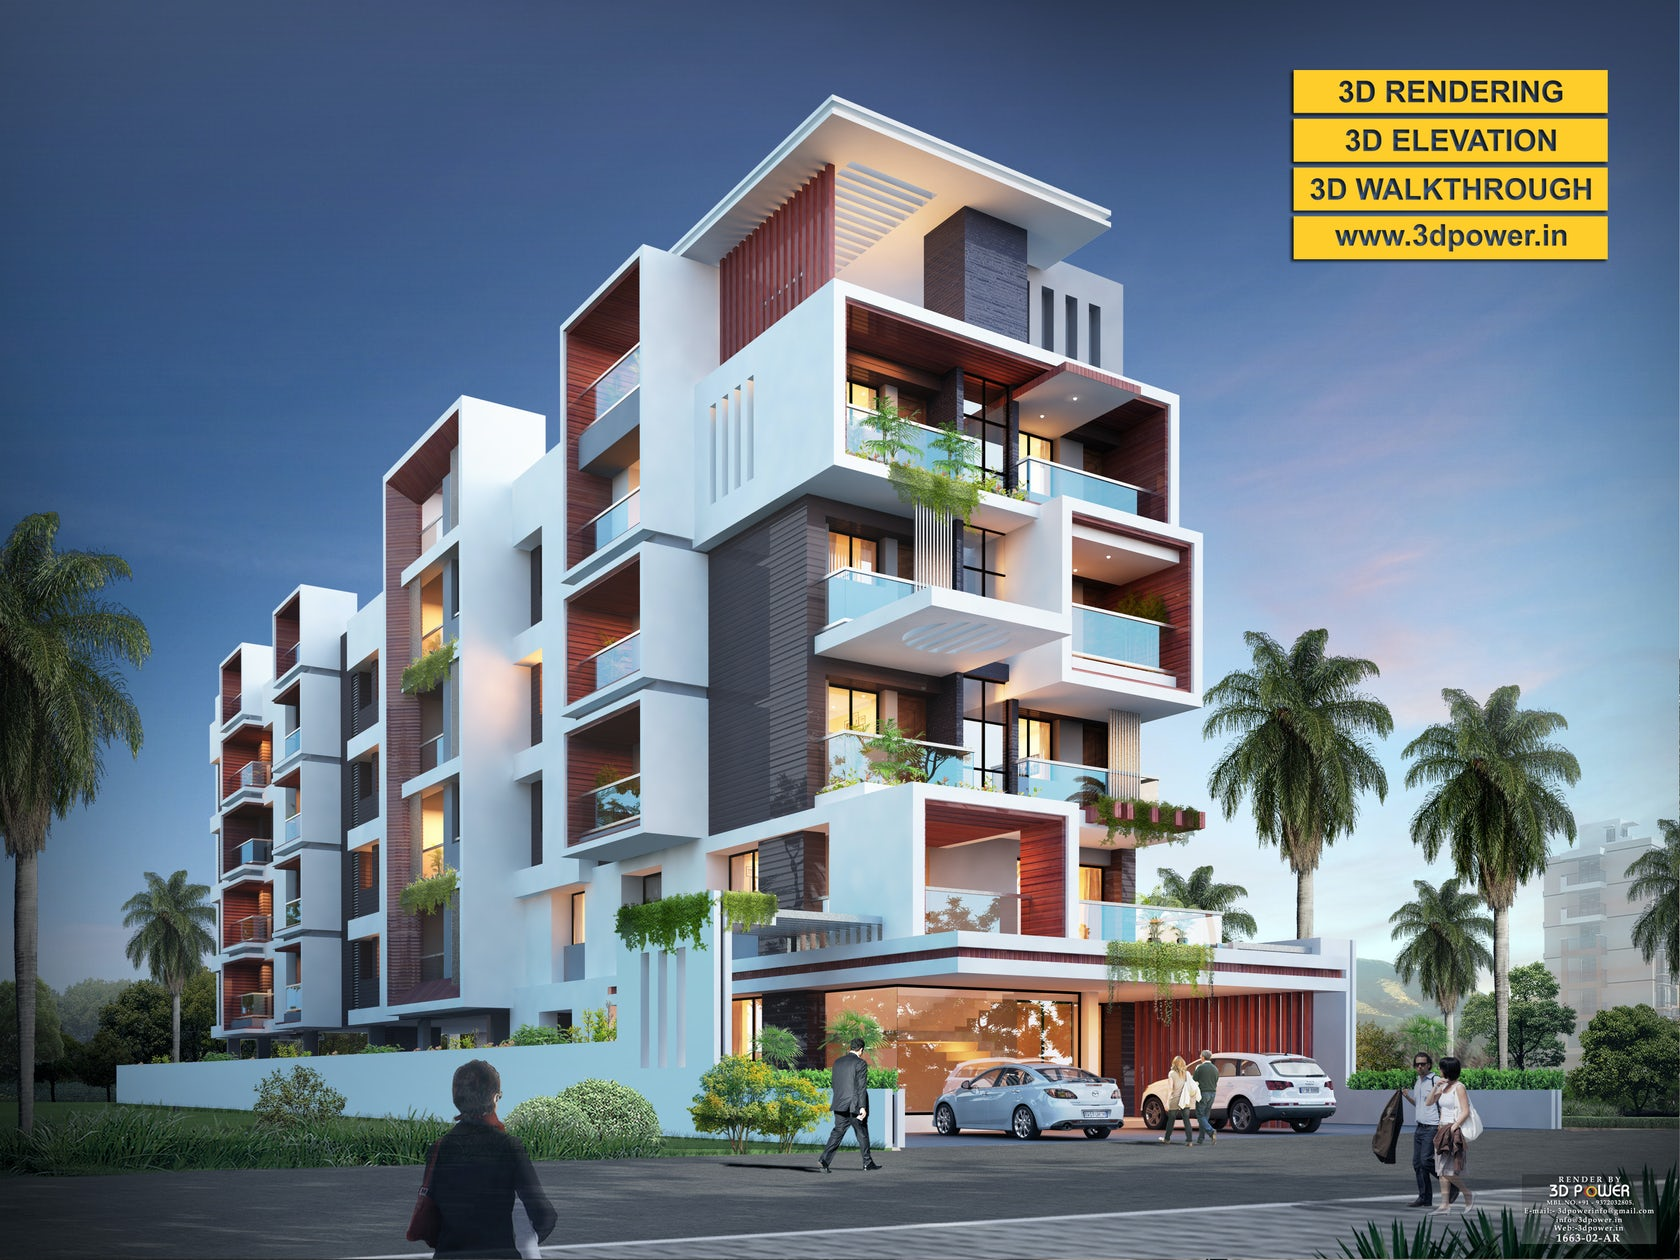 3d power visualization pvt ltd architizer for Apartment design and development ltd